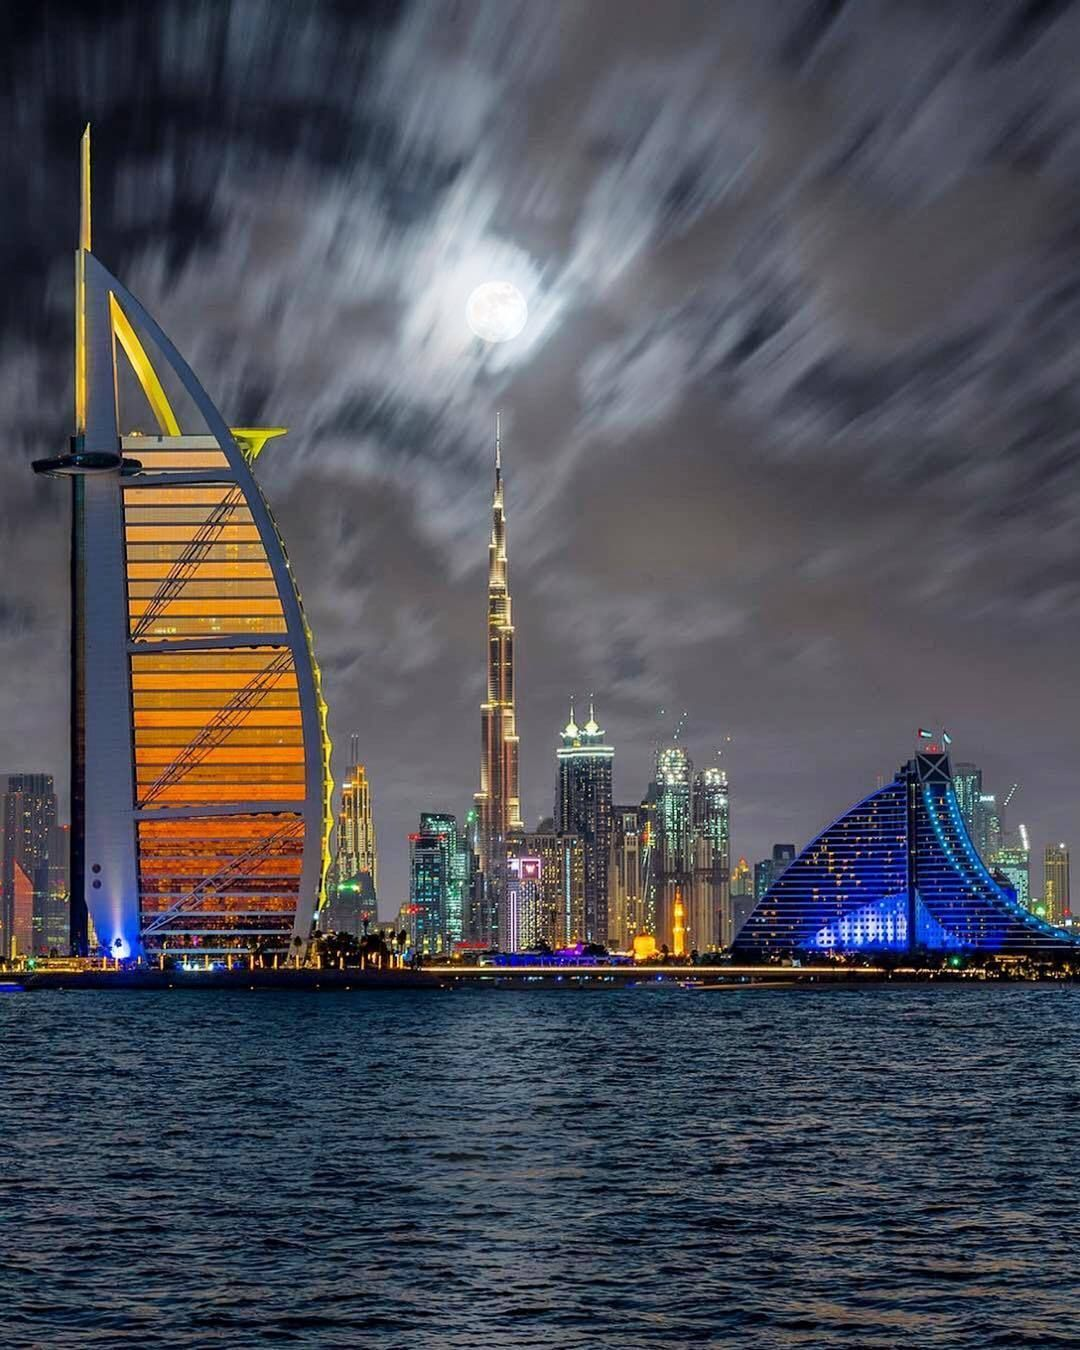 A Scintillating View of Burj Al Arab during night time in